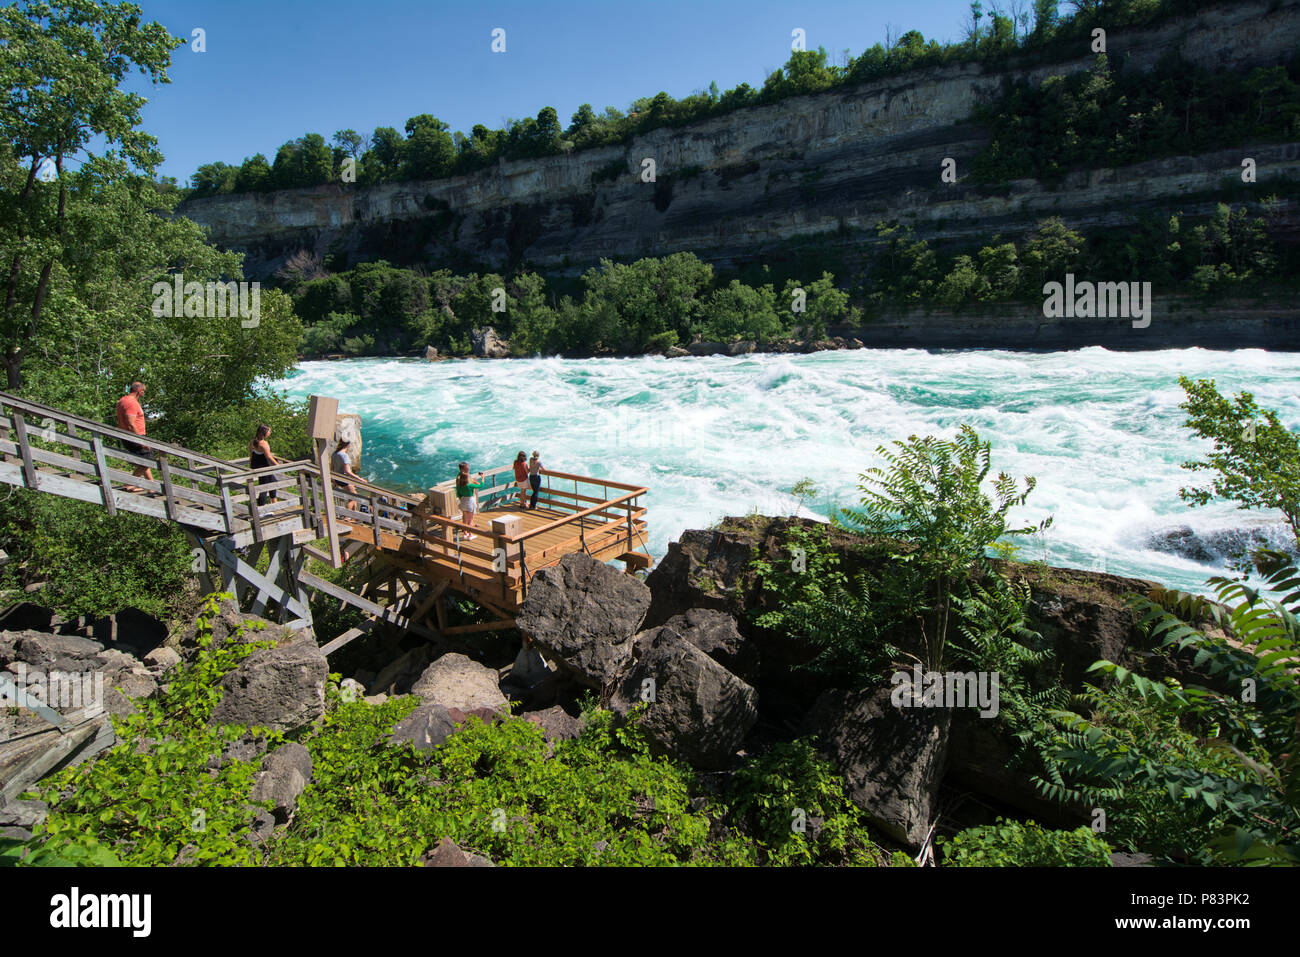 the Niagara River's Class 6 white-water rapids as seen from the White Water Walk attraction in the Niagara Gorge at Niagara Falls, Ontario, Canada - Stock Image